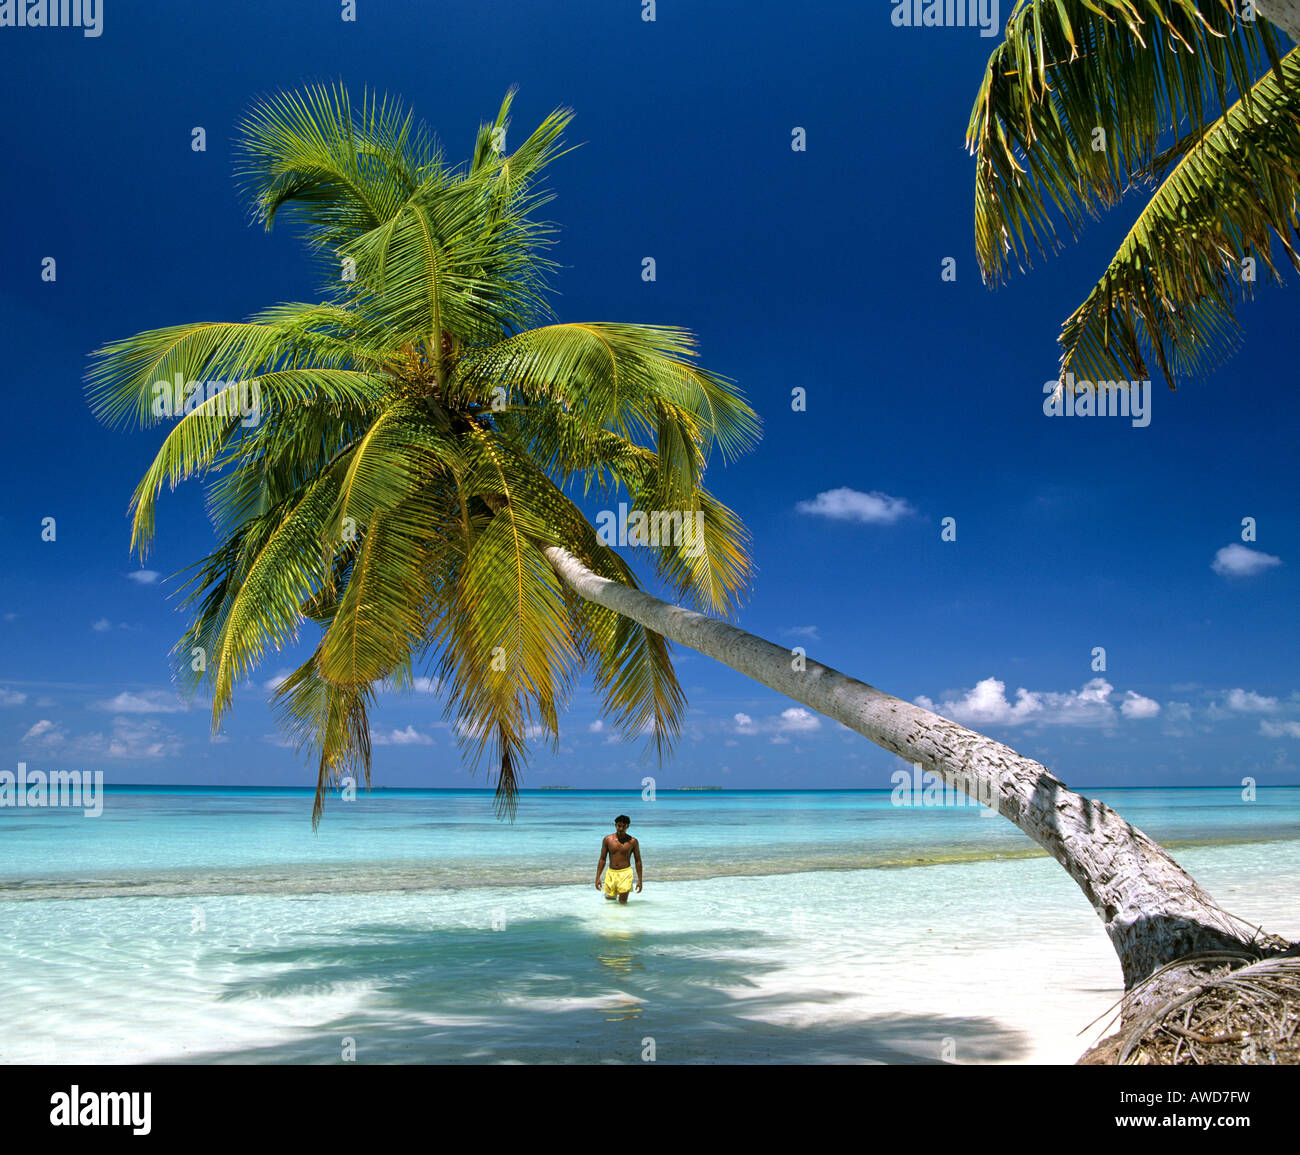 Palm Tree Beach: Palm Tree On Beach Hanging Over Water, Young Man Wading In